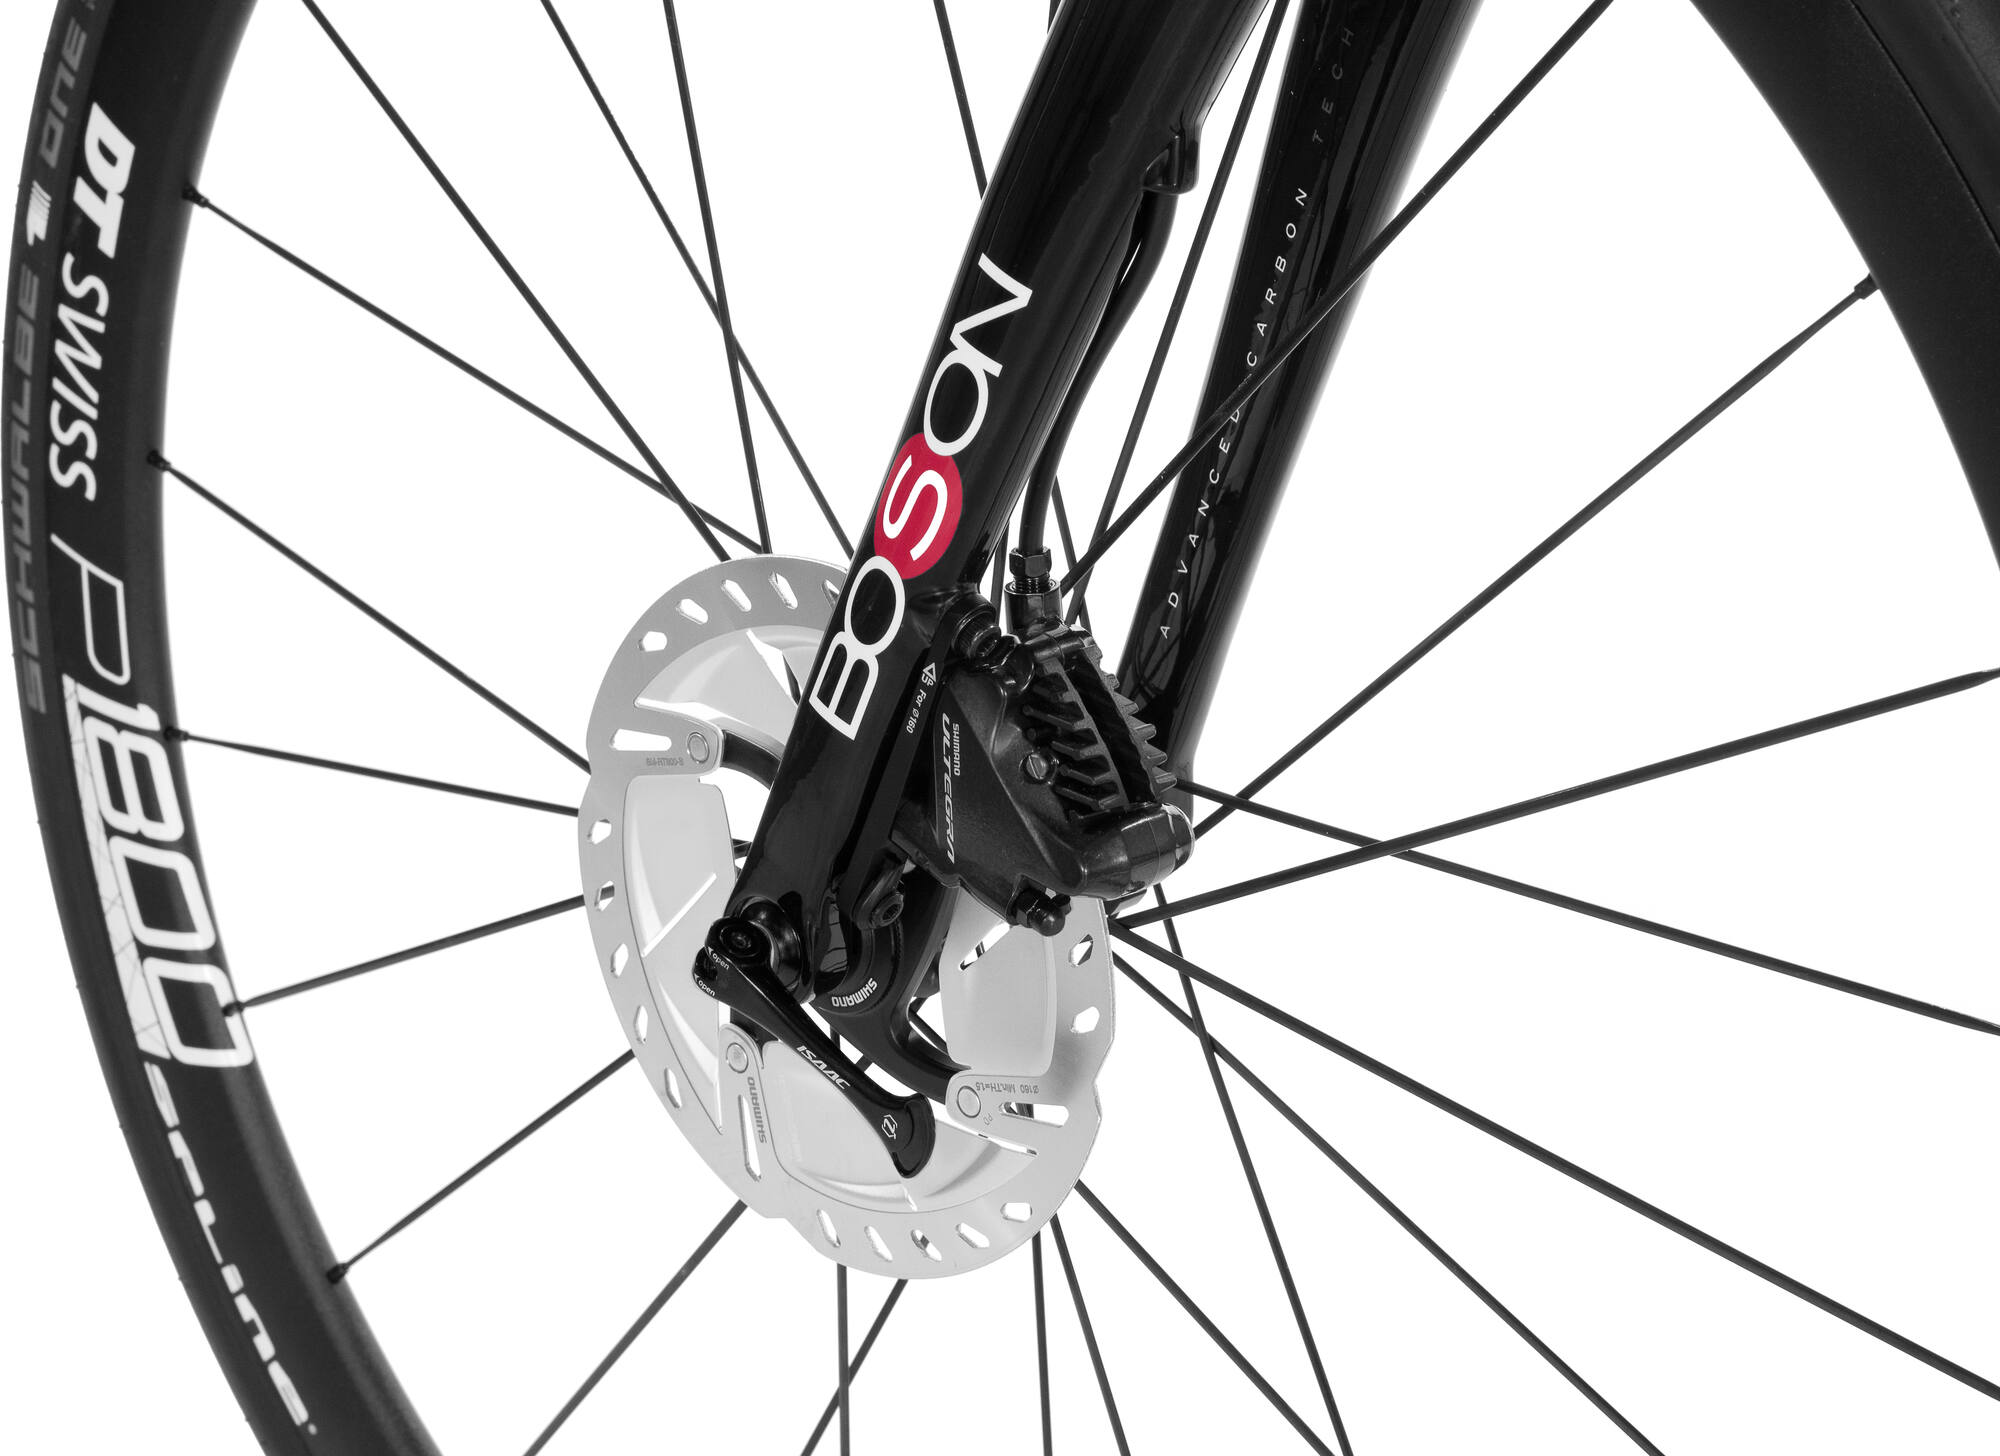 BIKE BOSON DISC | SRAM FORCE ETAP AXS